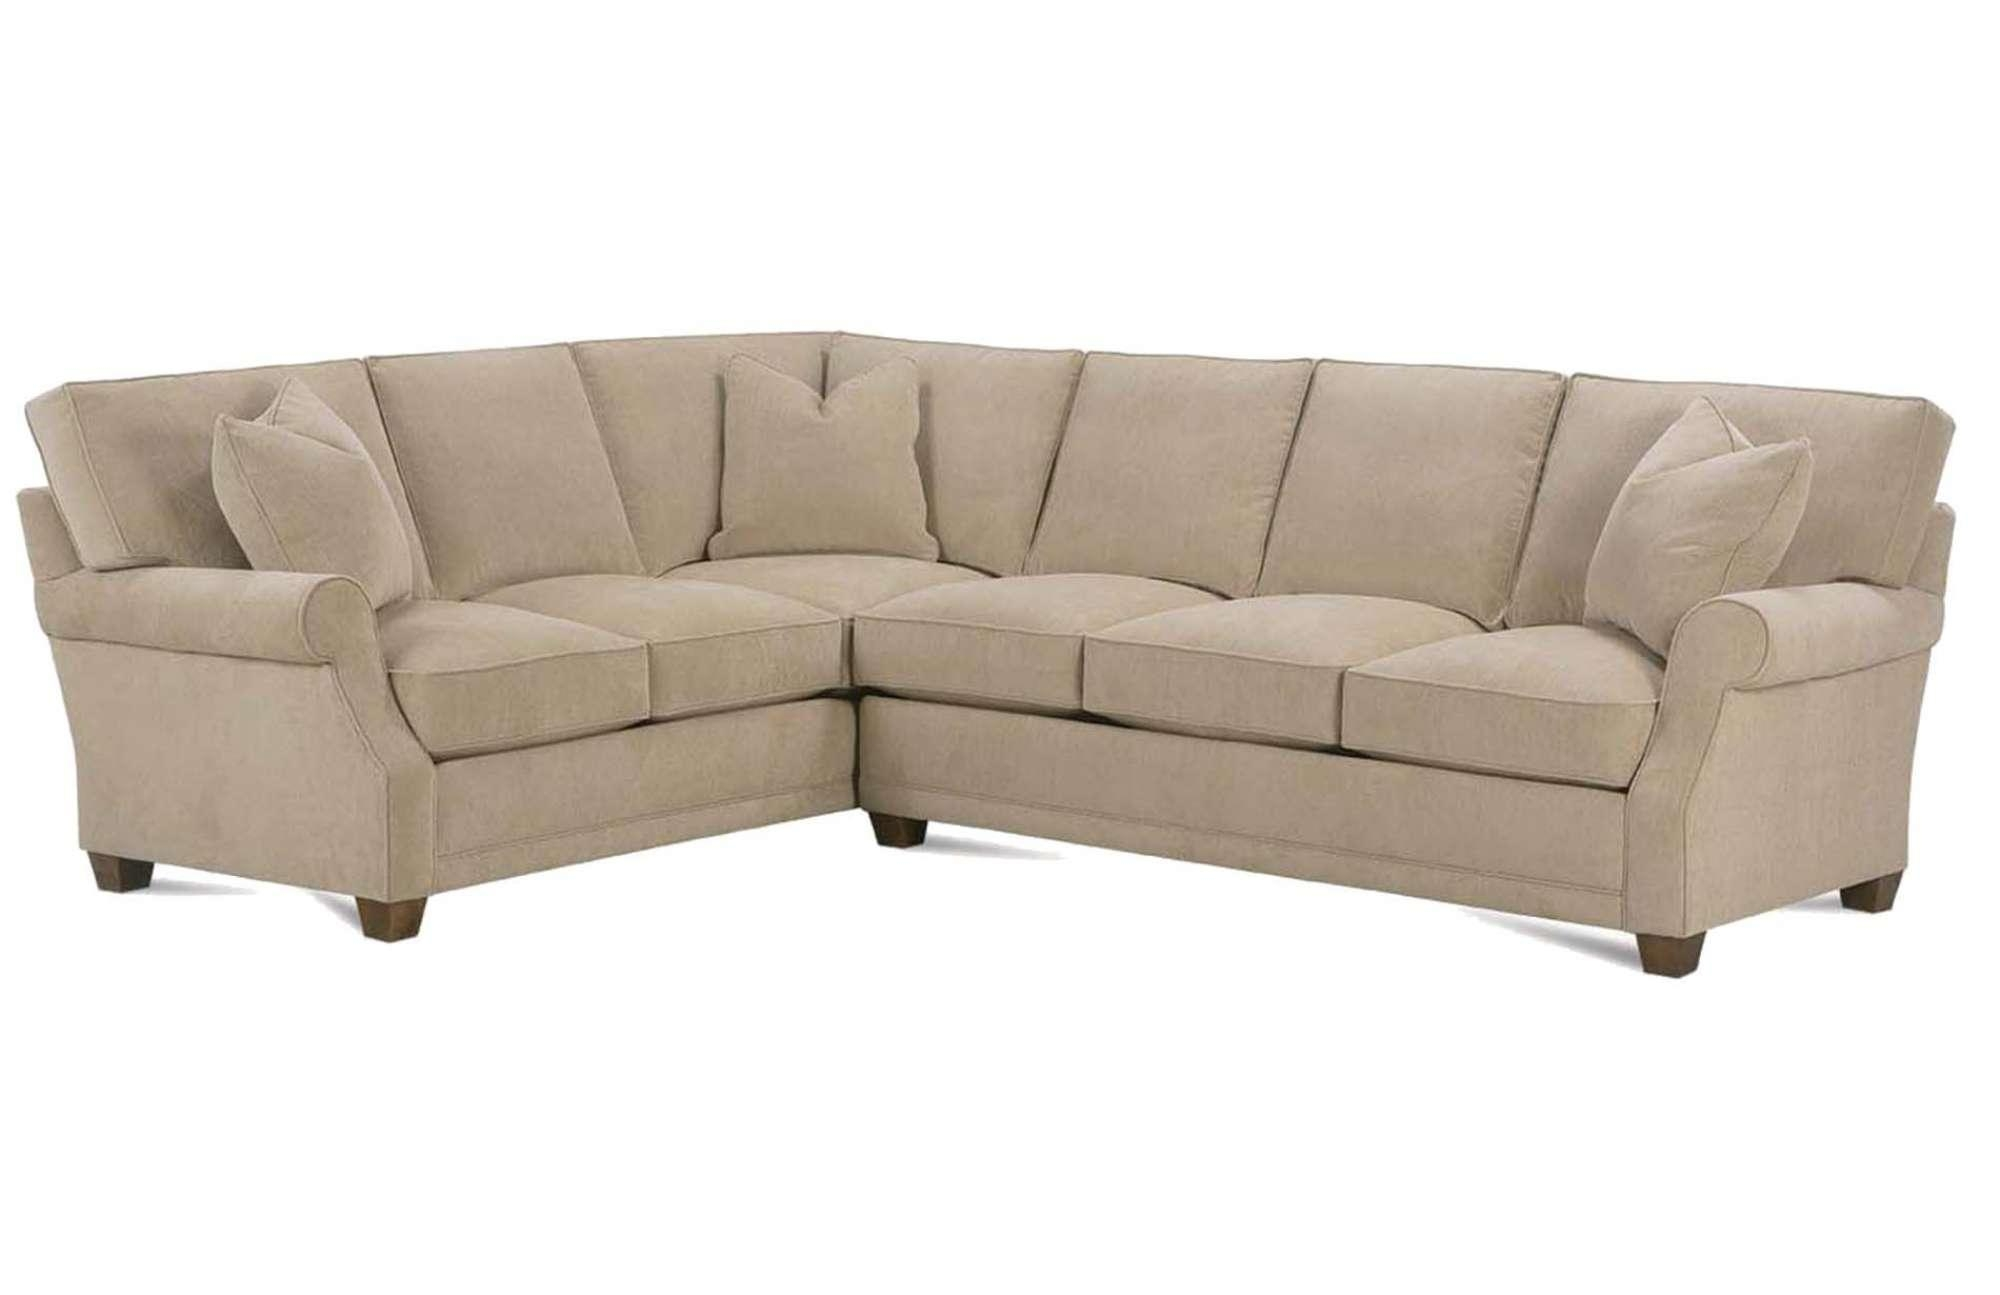 Sectionals | Concepts Furniture With Regard To Denver Sectional (Image 15 of 15)